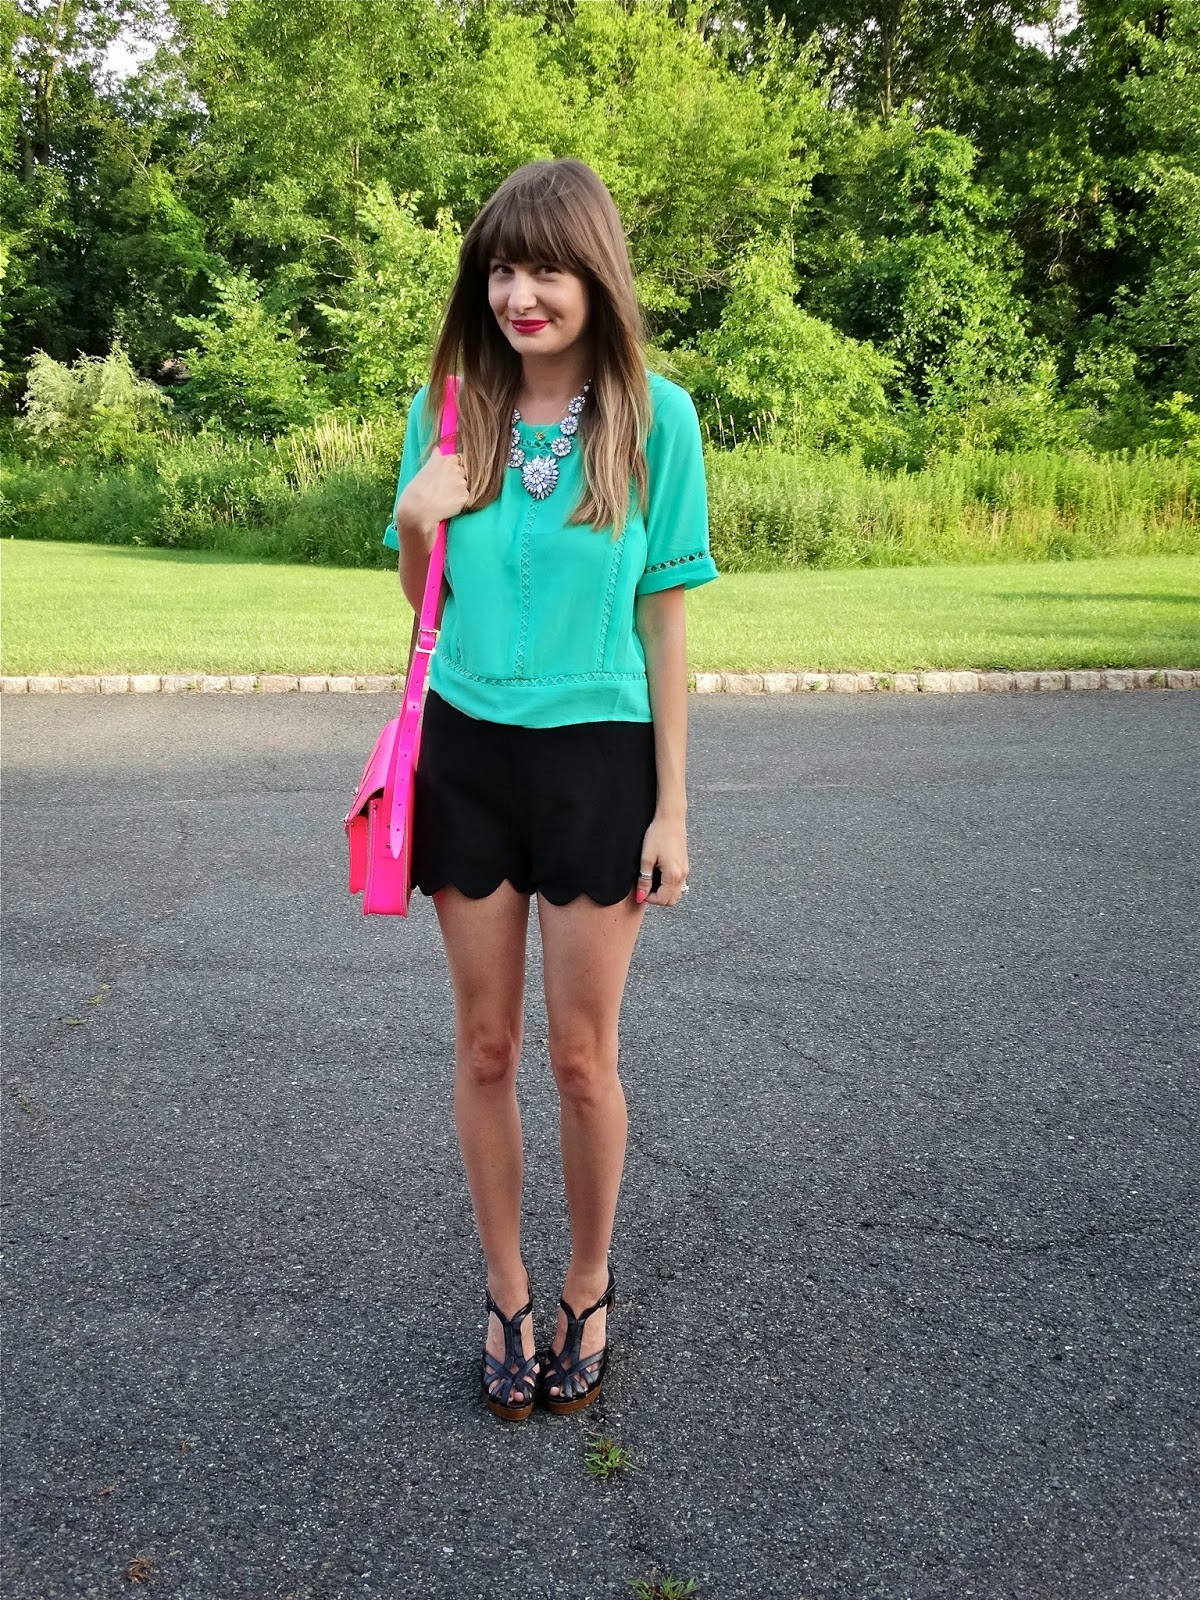 Jen of House Of Jeffers, wearing Scalloped Shorts from TJ Maxx, Crop Top from Francesca's, Cambridge Satchel and Nine West Wedges